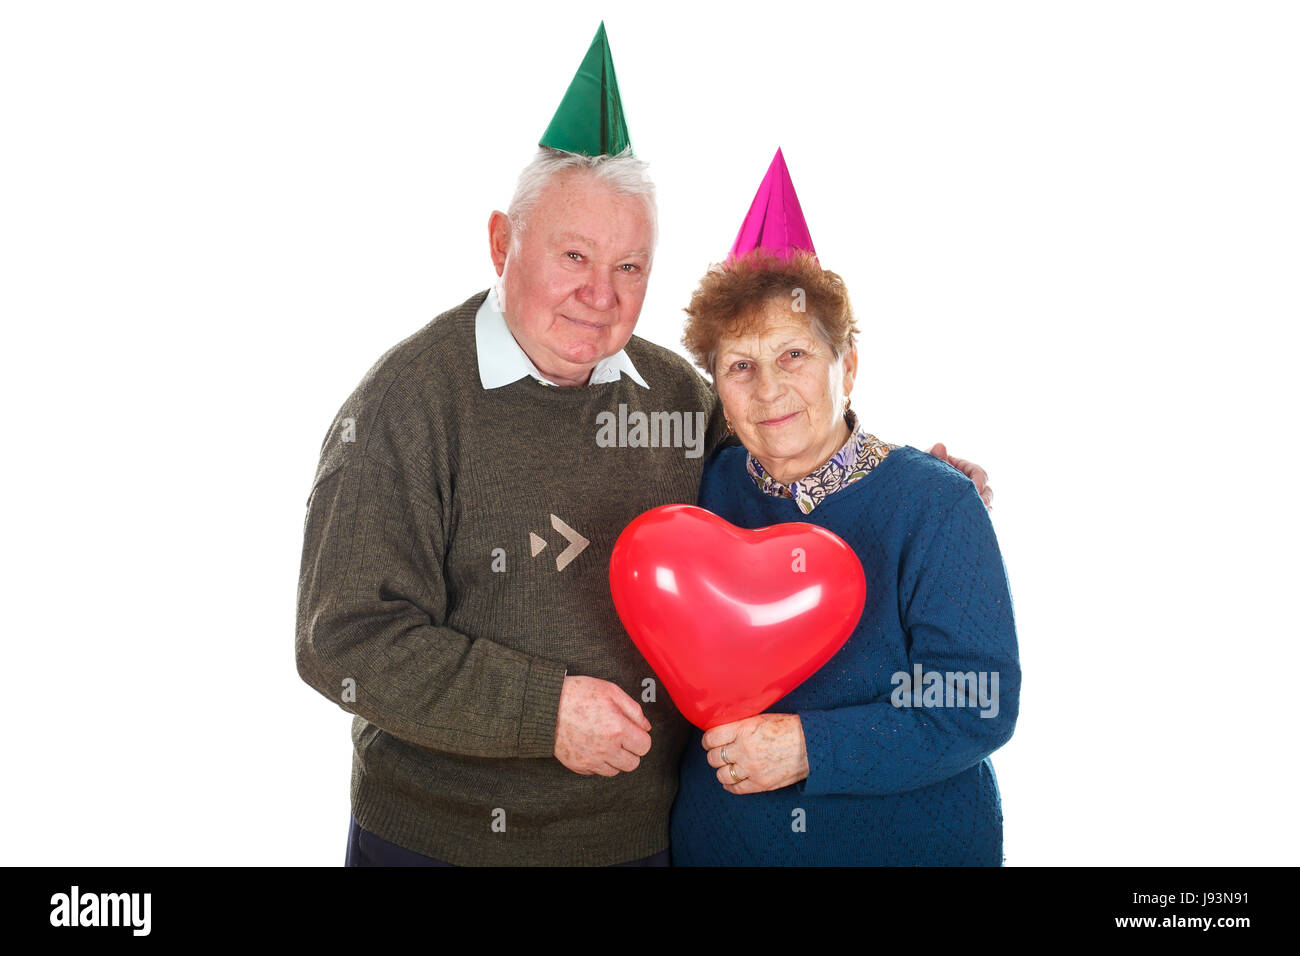 Portrait of a senior couple celebrating birthday - isolated background - Stock Image